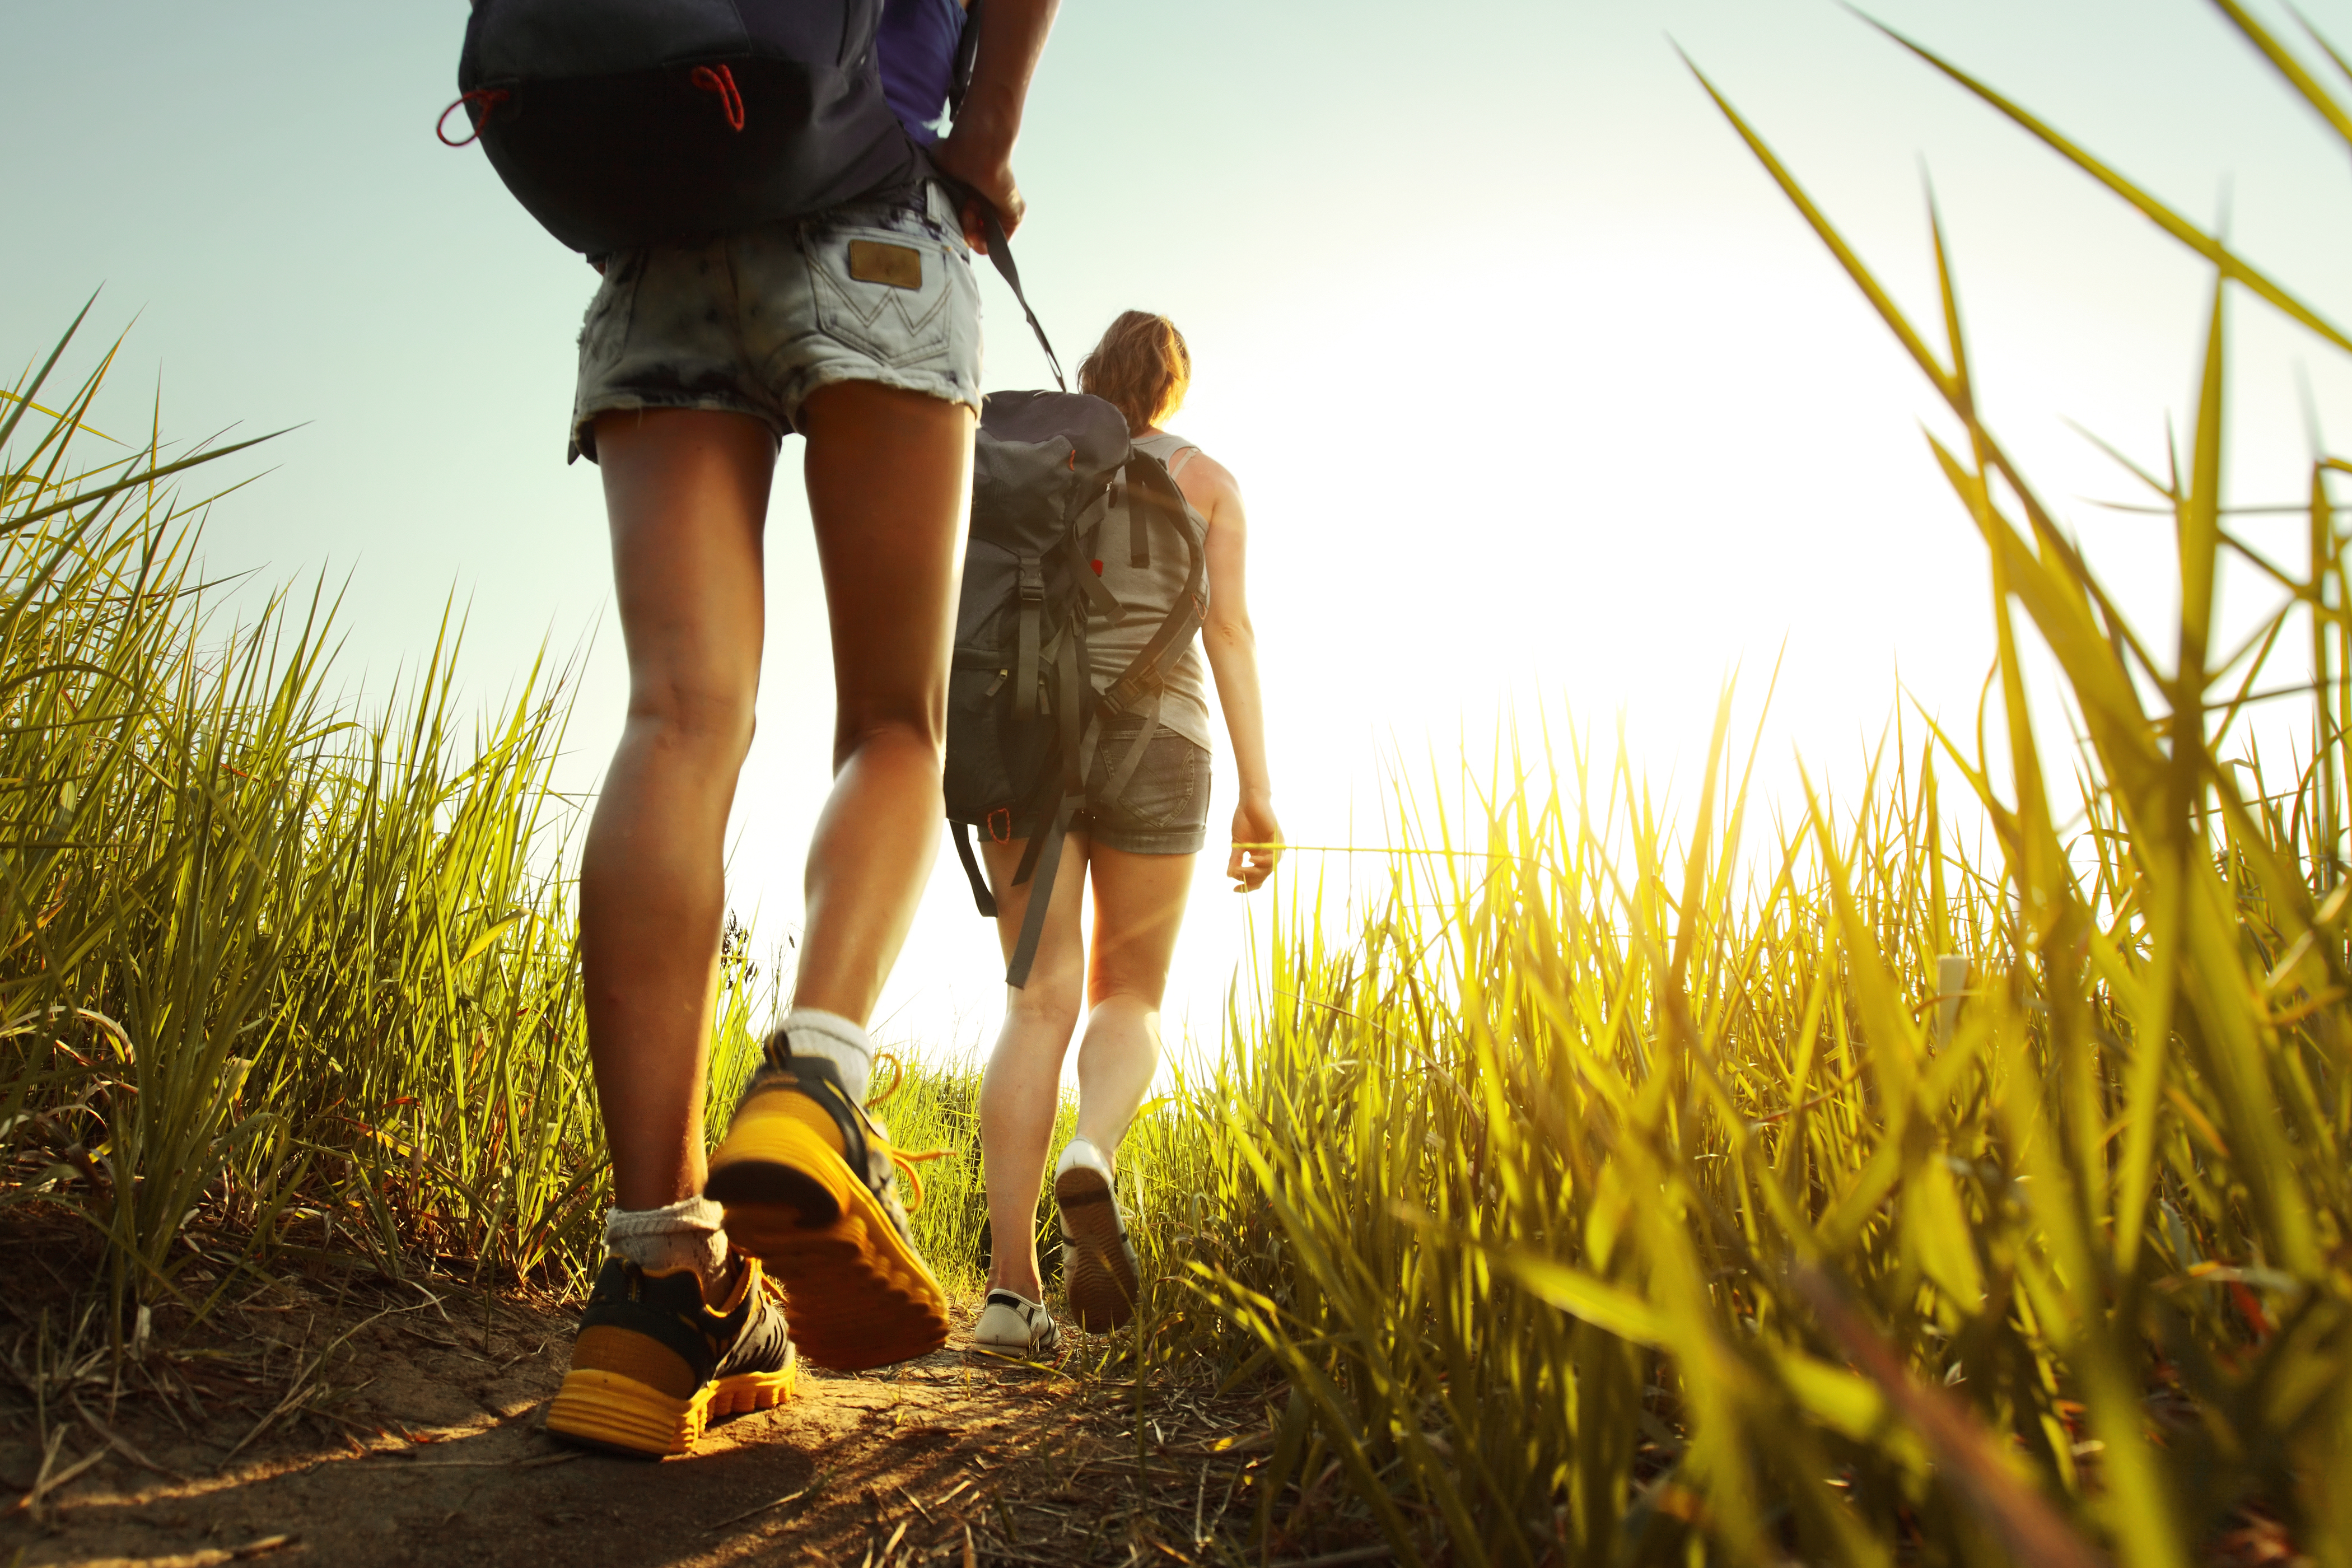 bigstock-Hikers-with-backpacks-walking--44736049